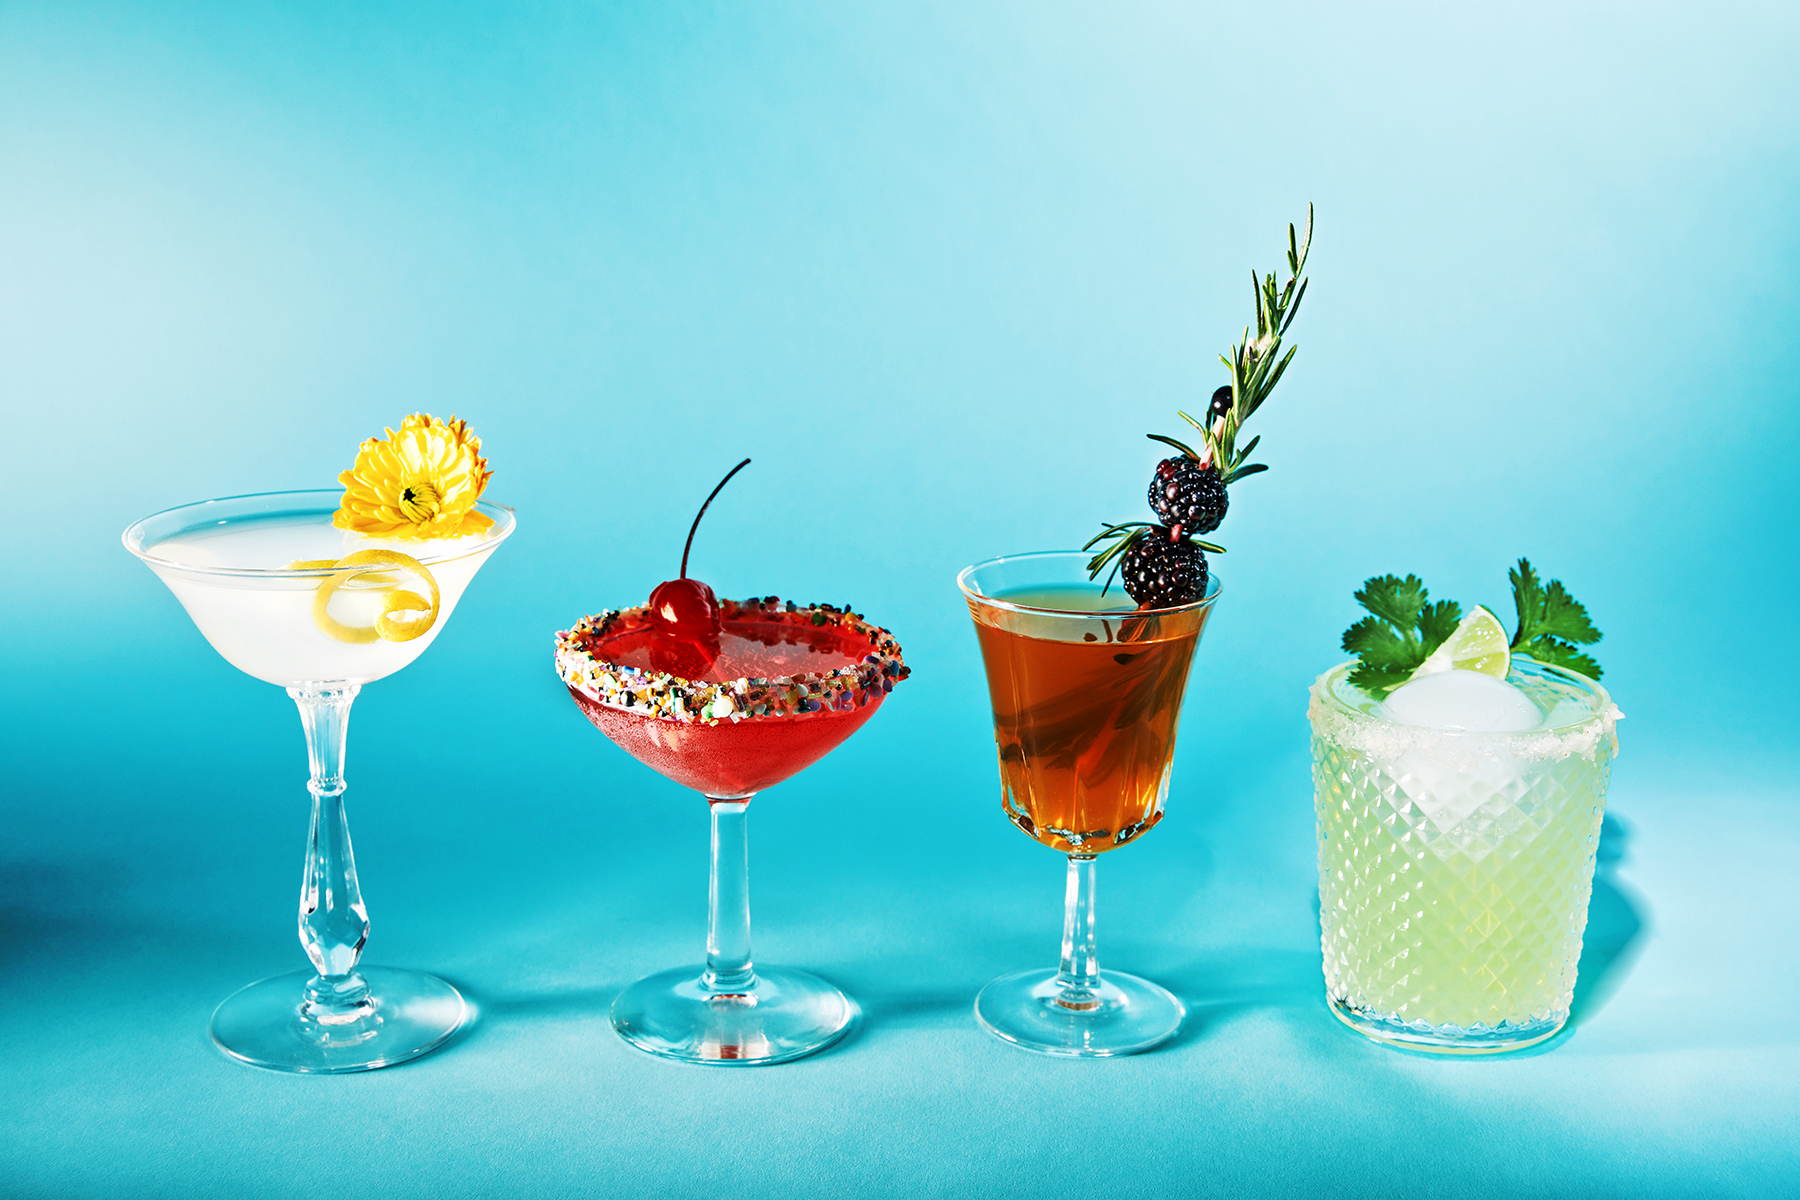 4 cocktails showing selection of cocktail garnishes